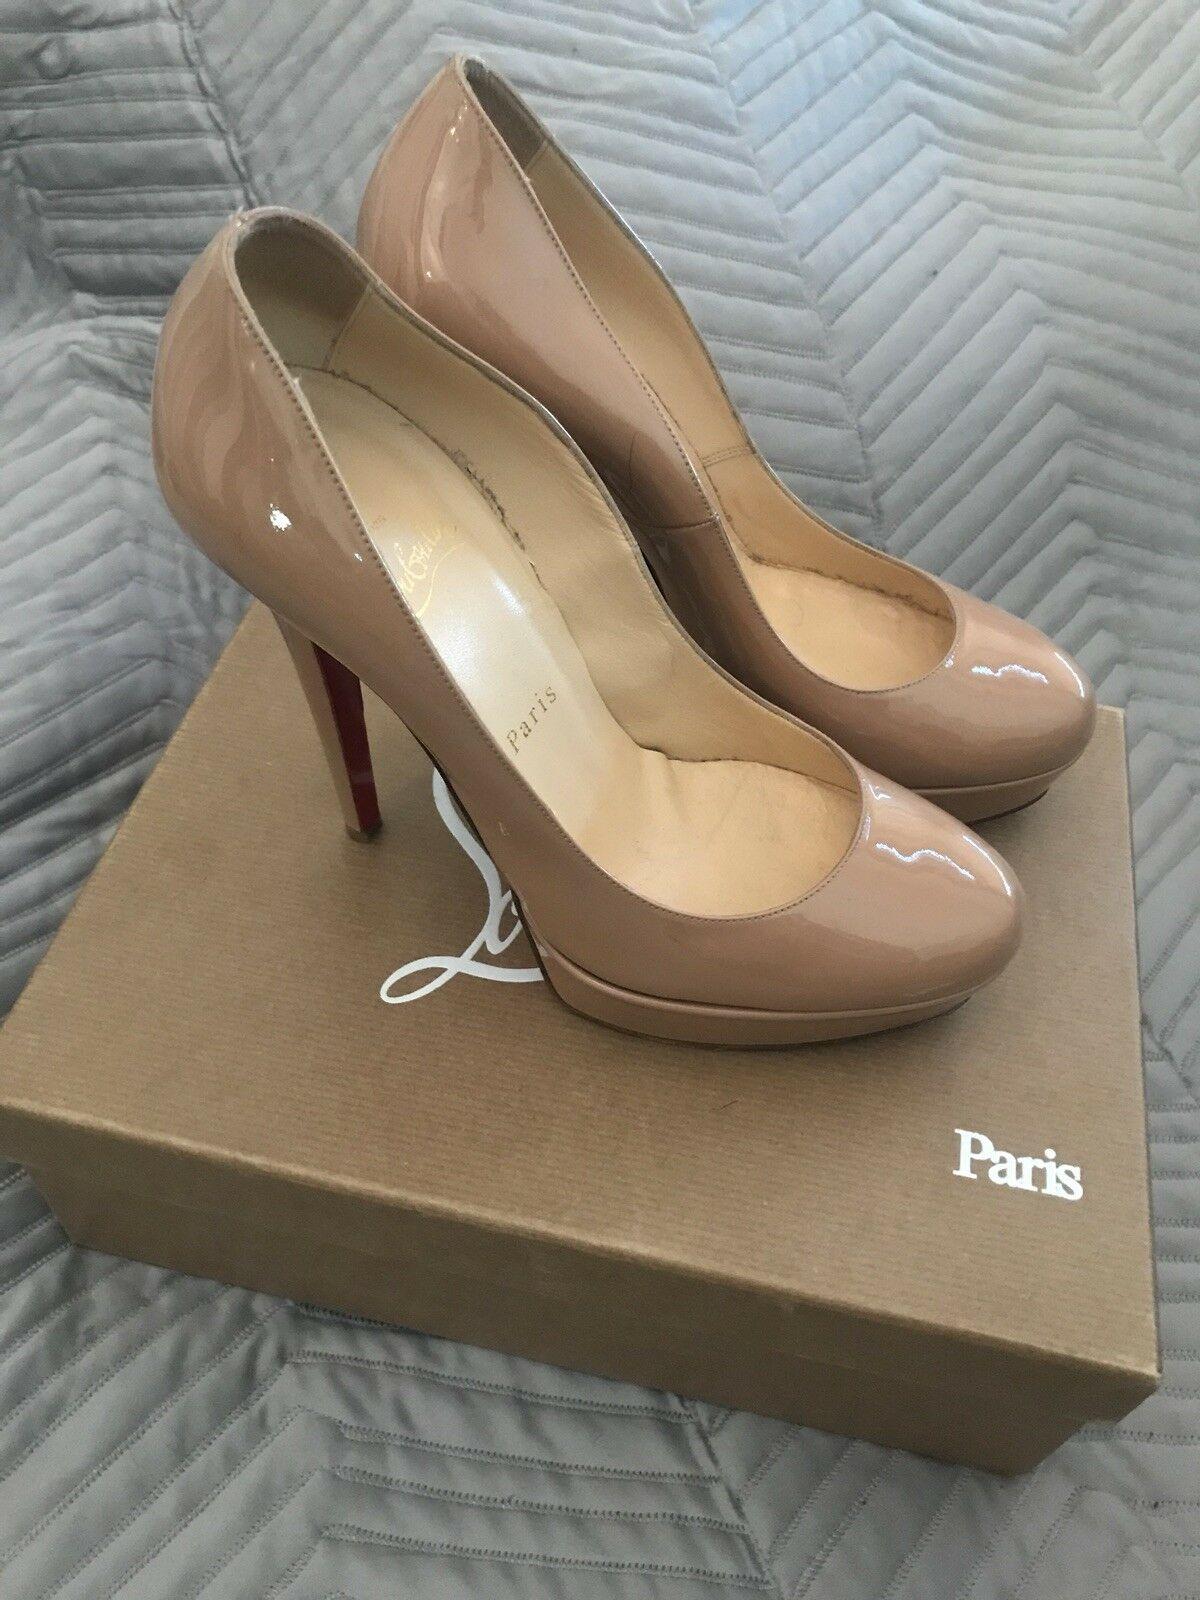 Christian Louboutin - Simple Pump - Nude Patent Leather Leather Leather - Size 38 - Used 1408cb